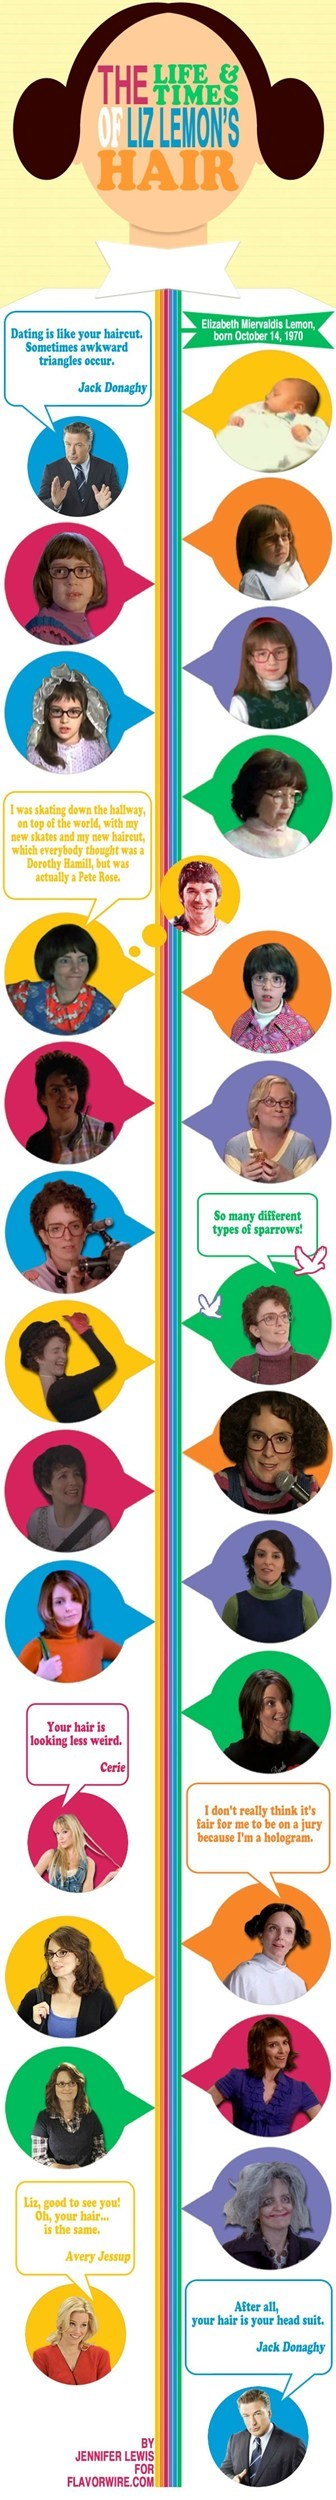 30 rock infographic liz lemon